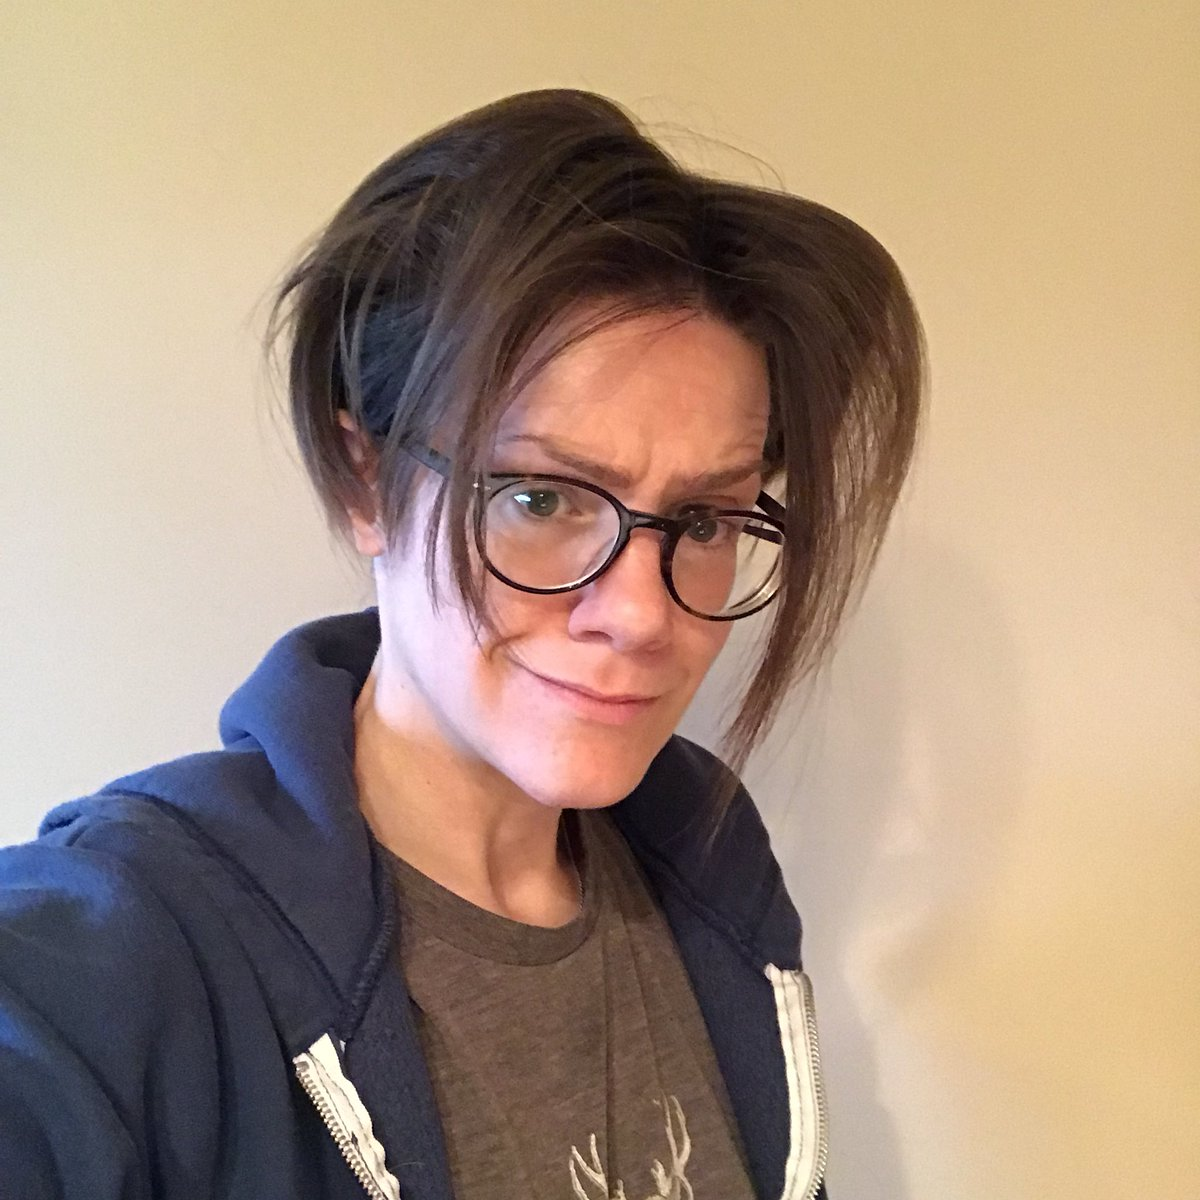 Cameron Esposito On Twitter Oh Cool Accidental Hair Stume